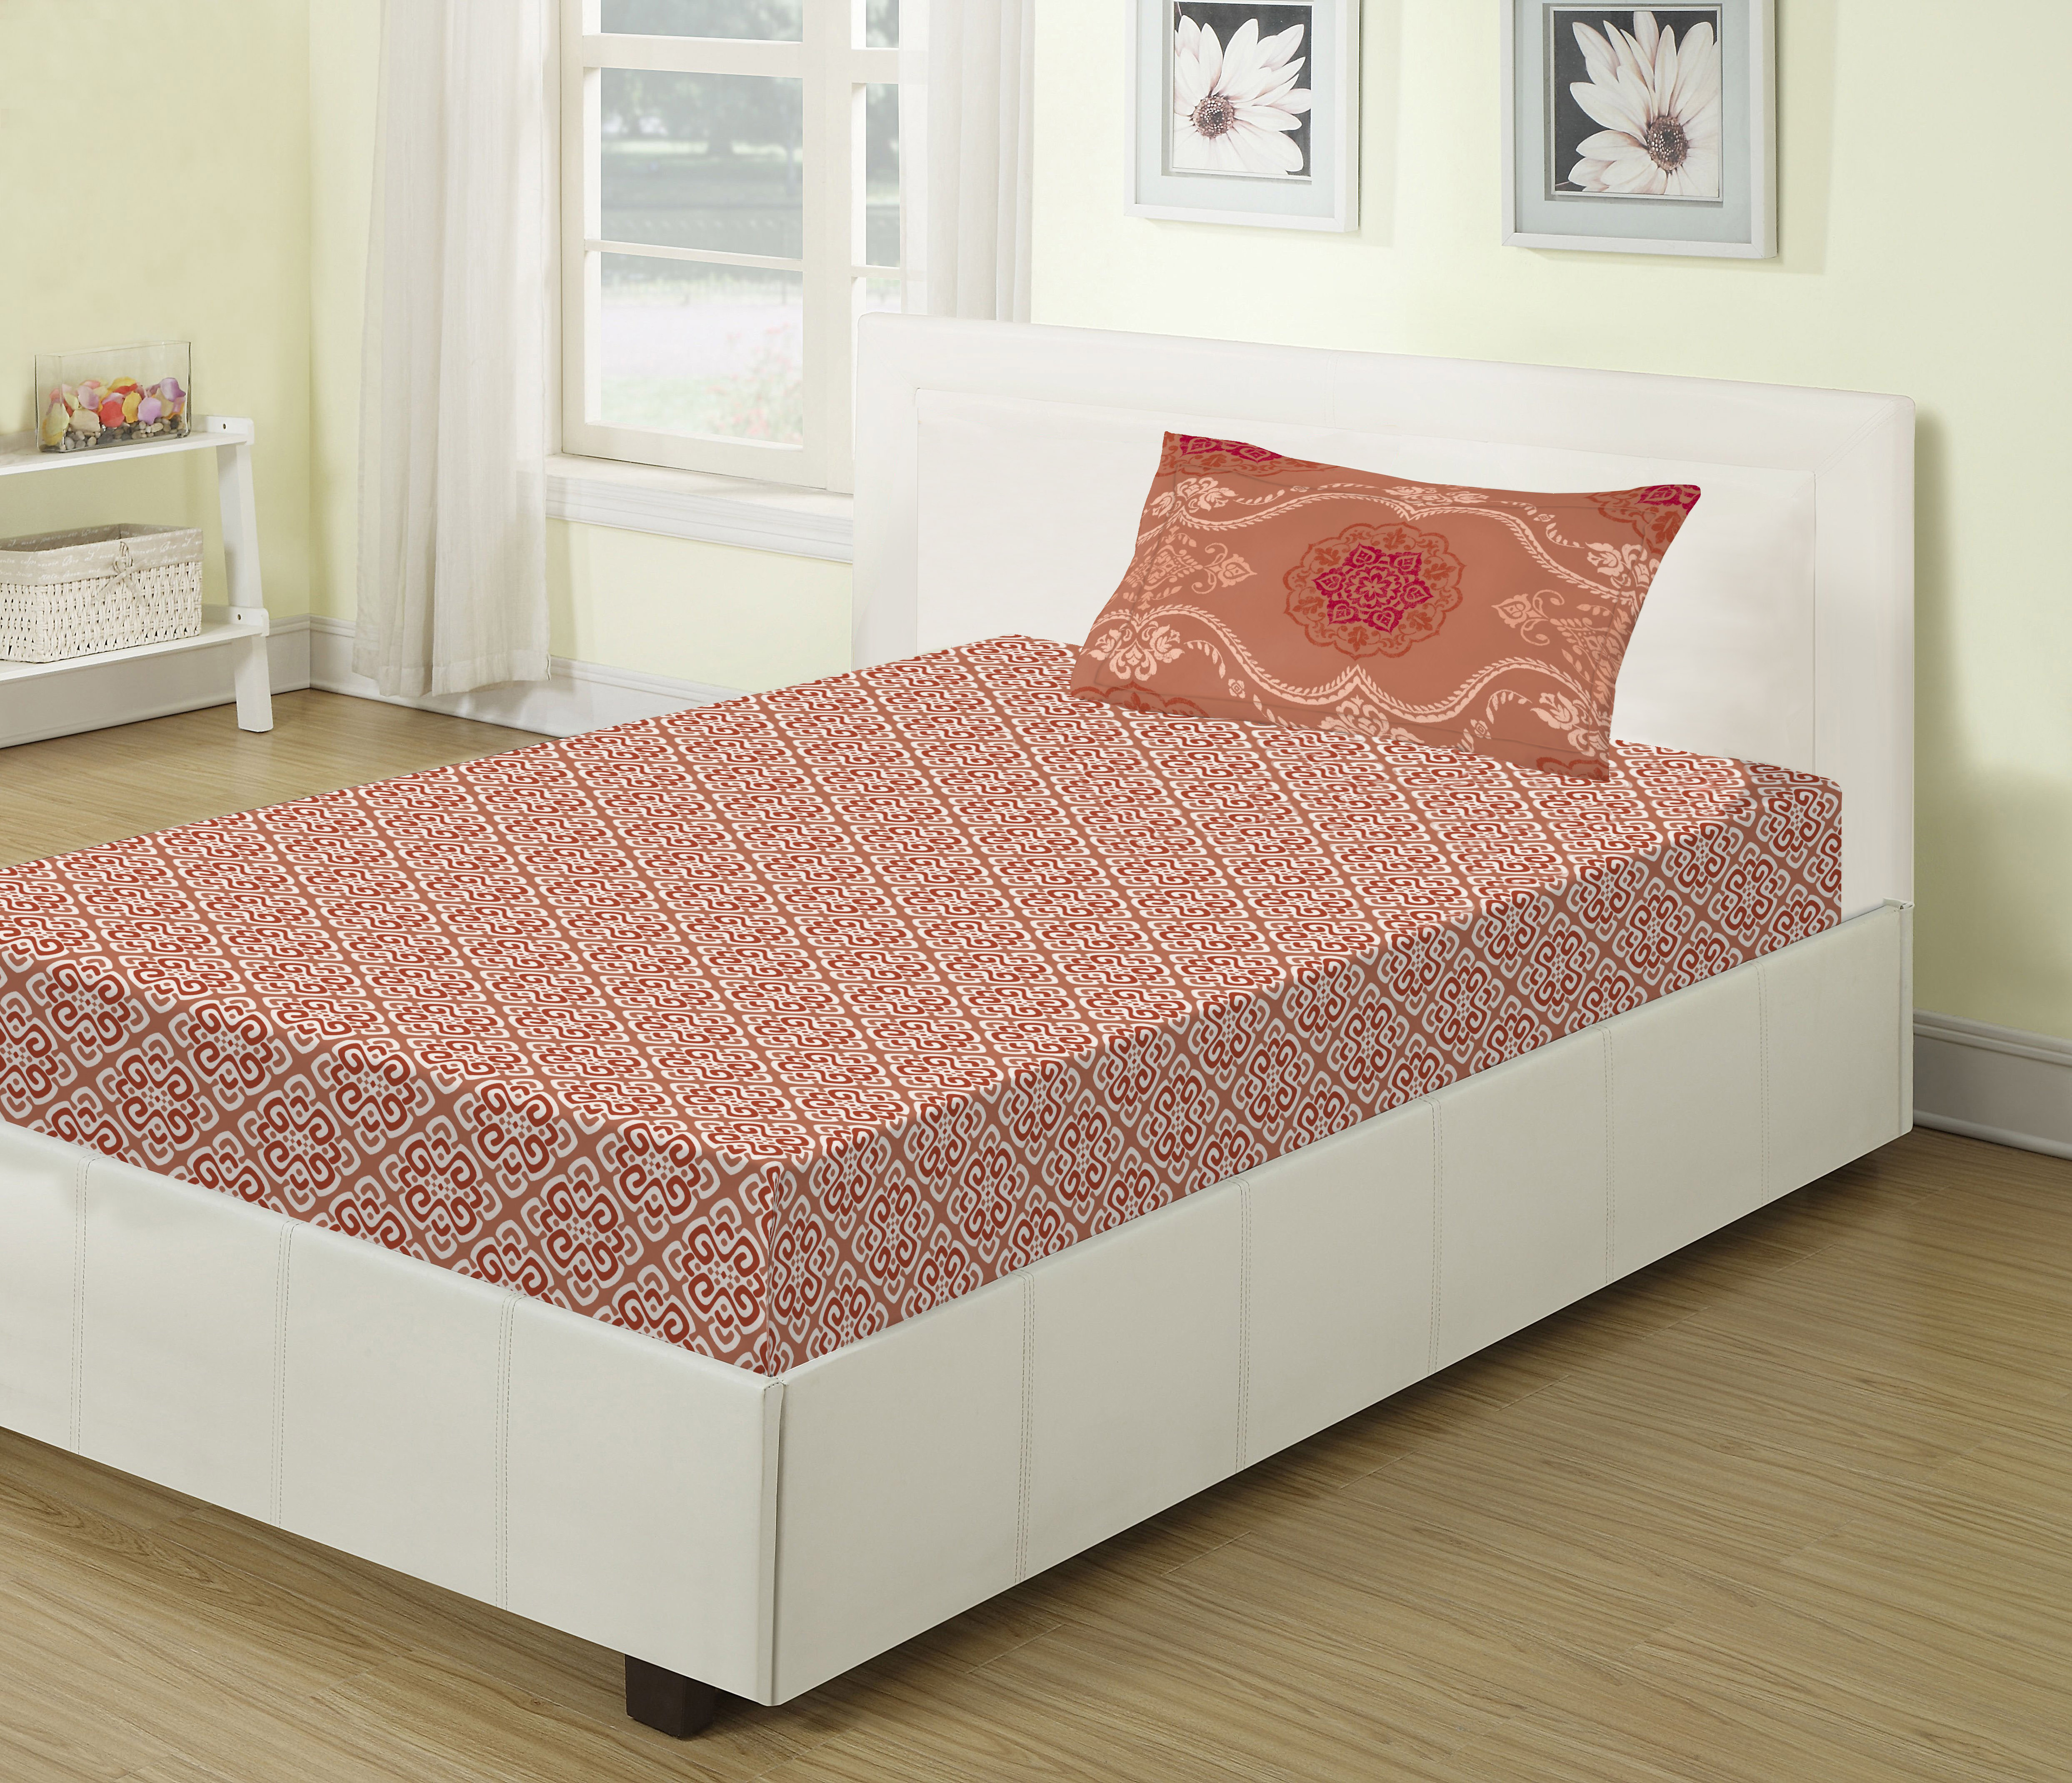 Emilia Cotton Single Bed Sheets in Rust Colour by Living Essence